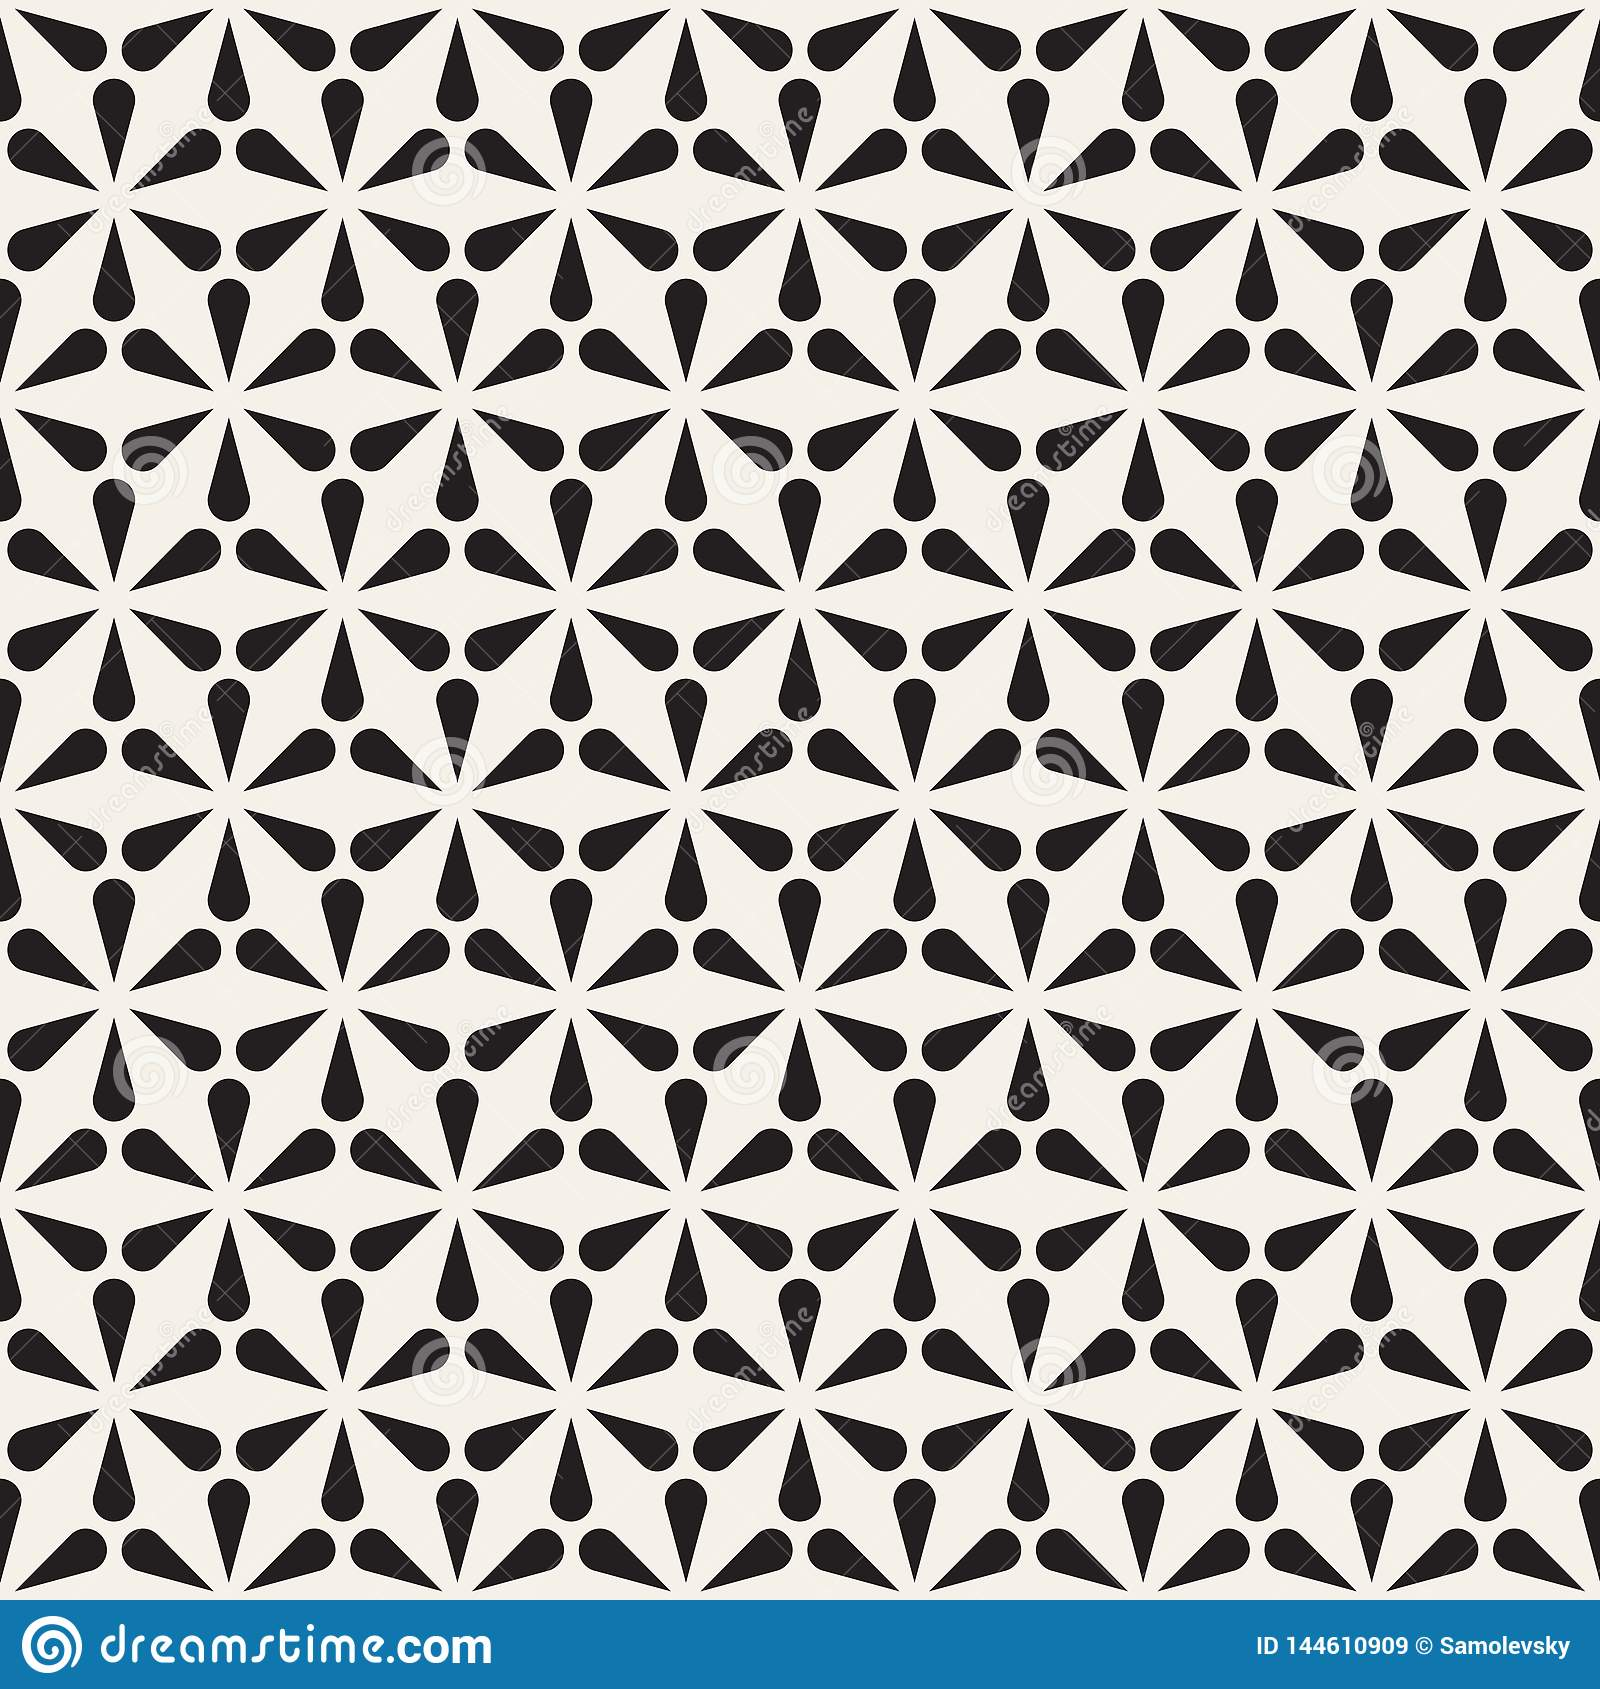 Vector seamless pattern. Modern abstract texture. Repeating geometric tiles from petal shapes.